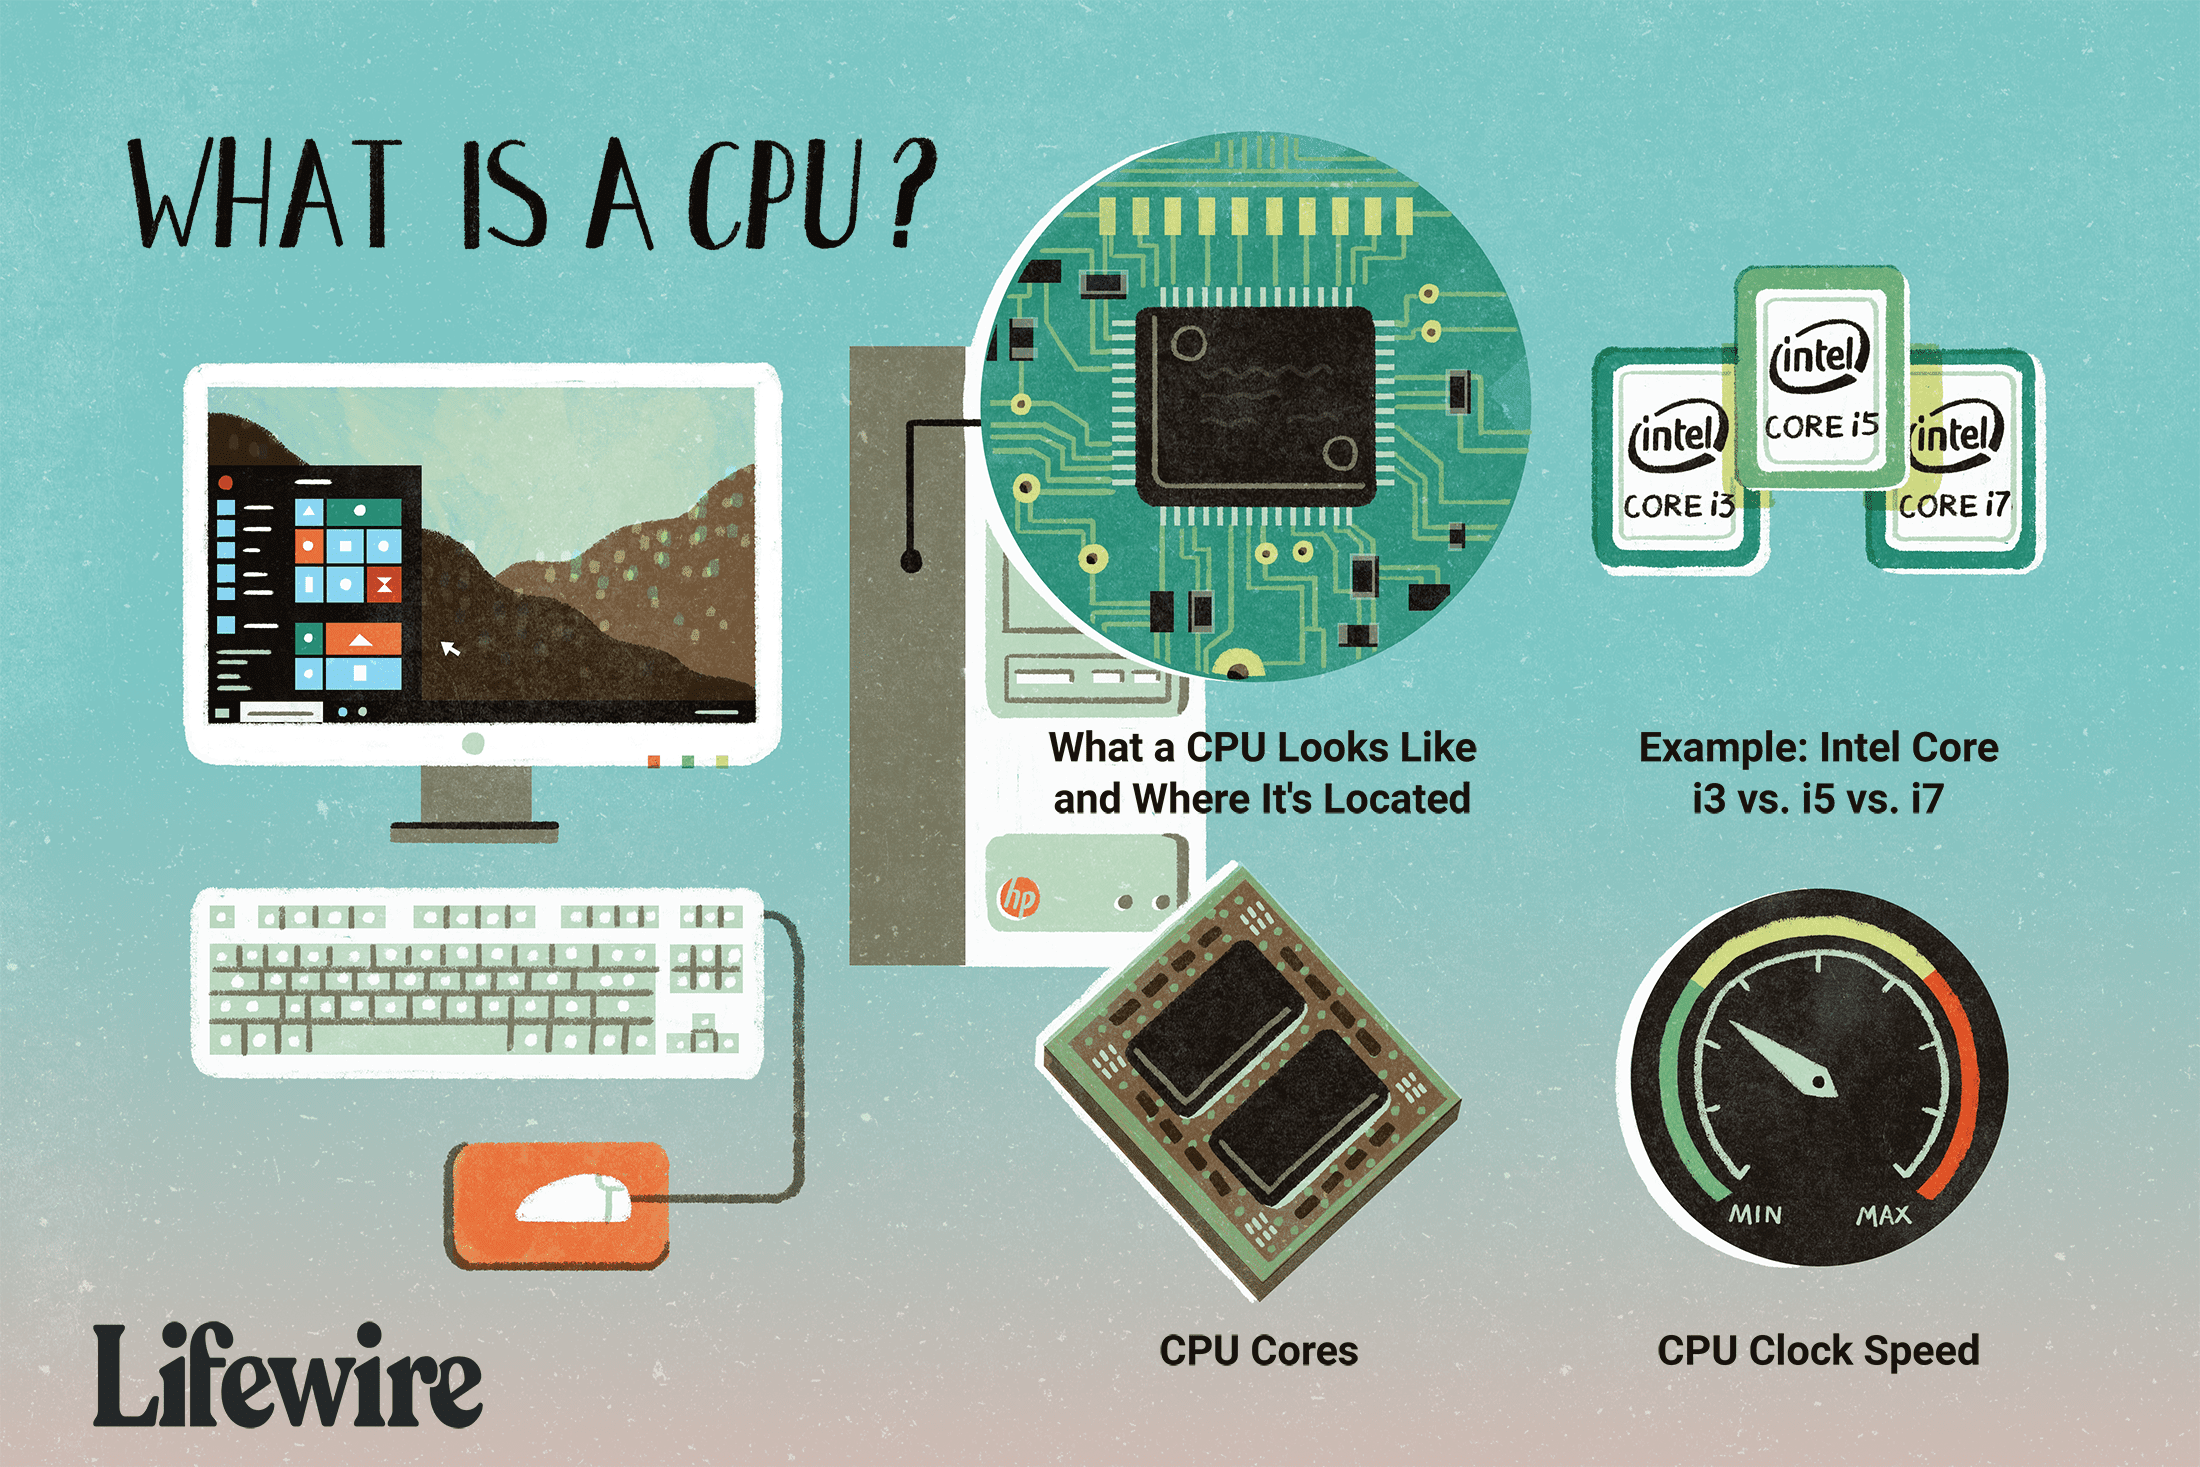 An illustration of what a CPU is, including where it's located, what it looks like, and examples.